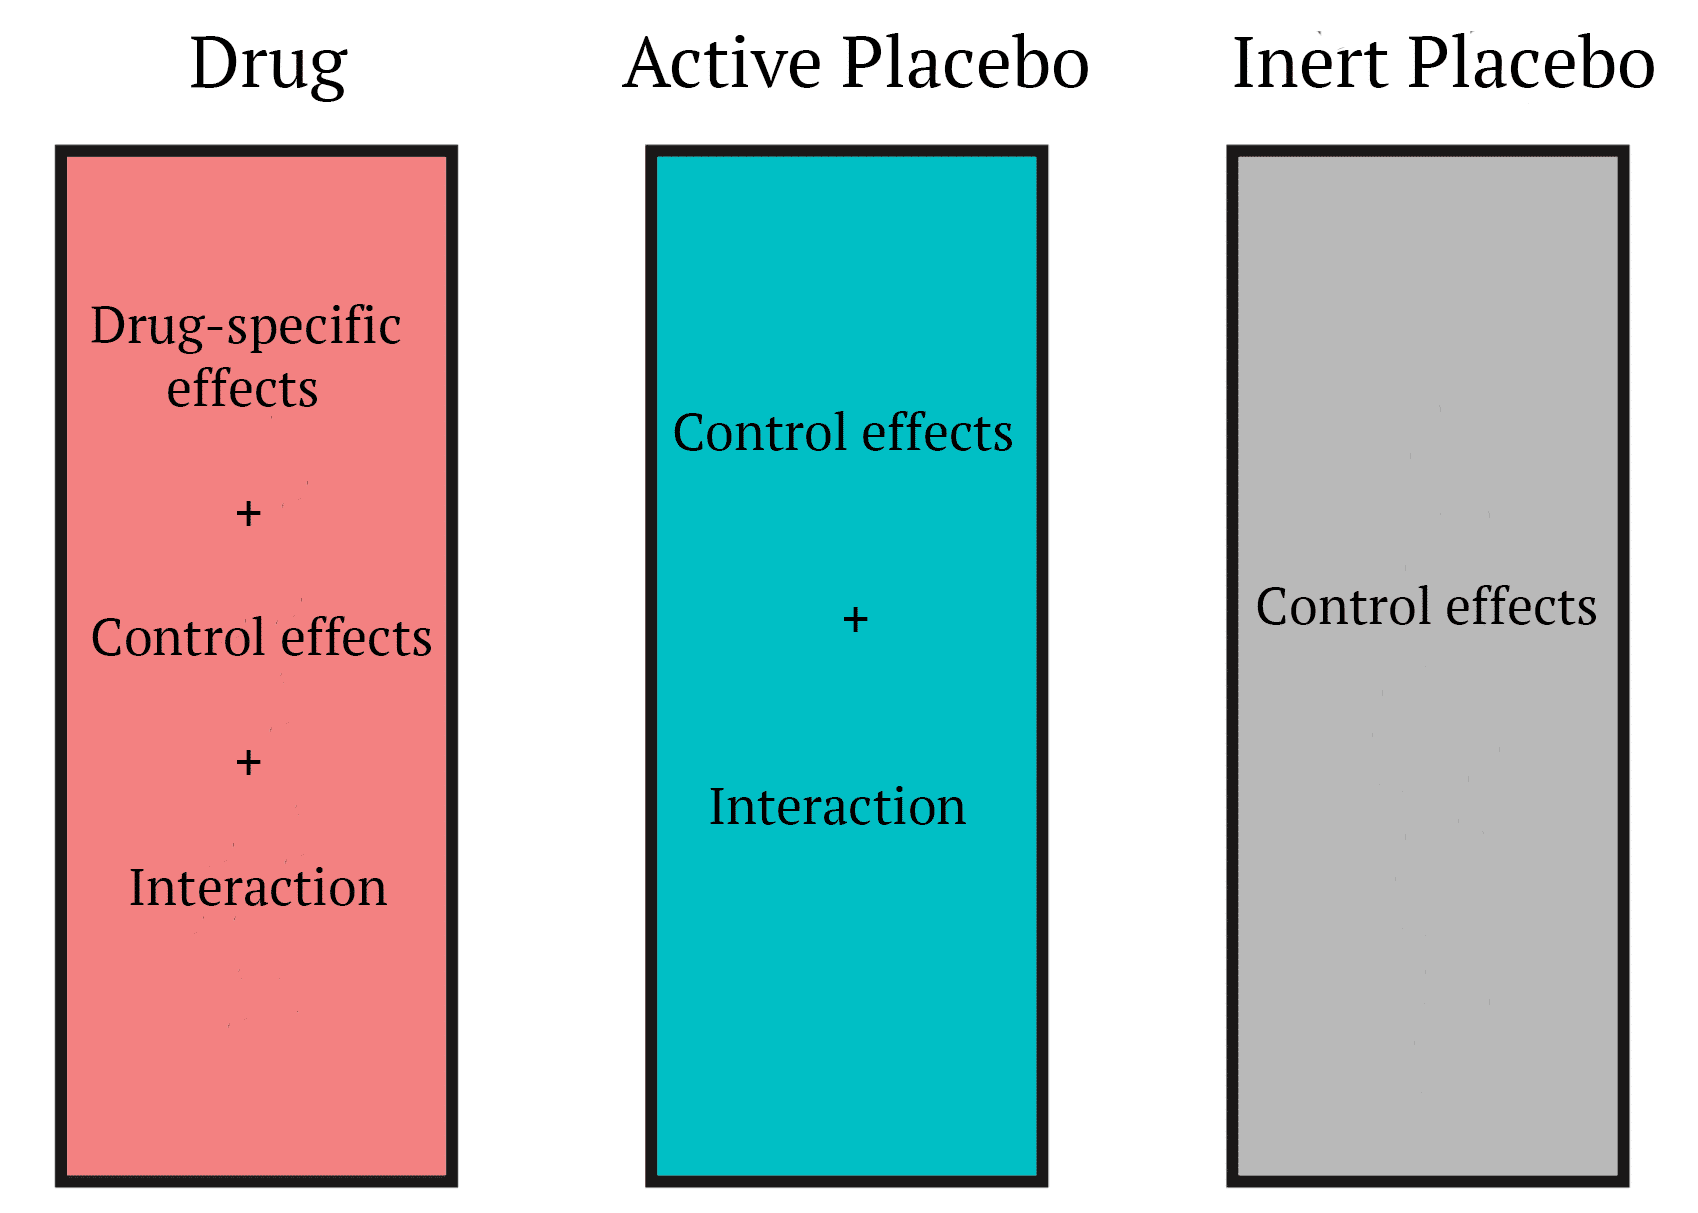 Depiction of using a design that includes an active placebo and an inert placebo